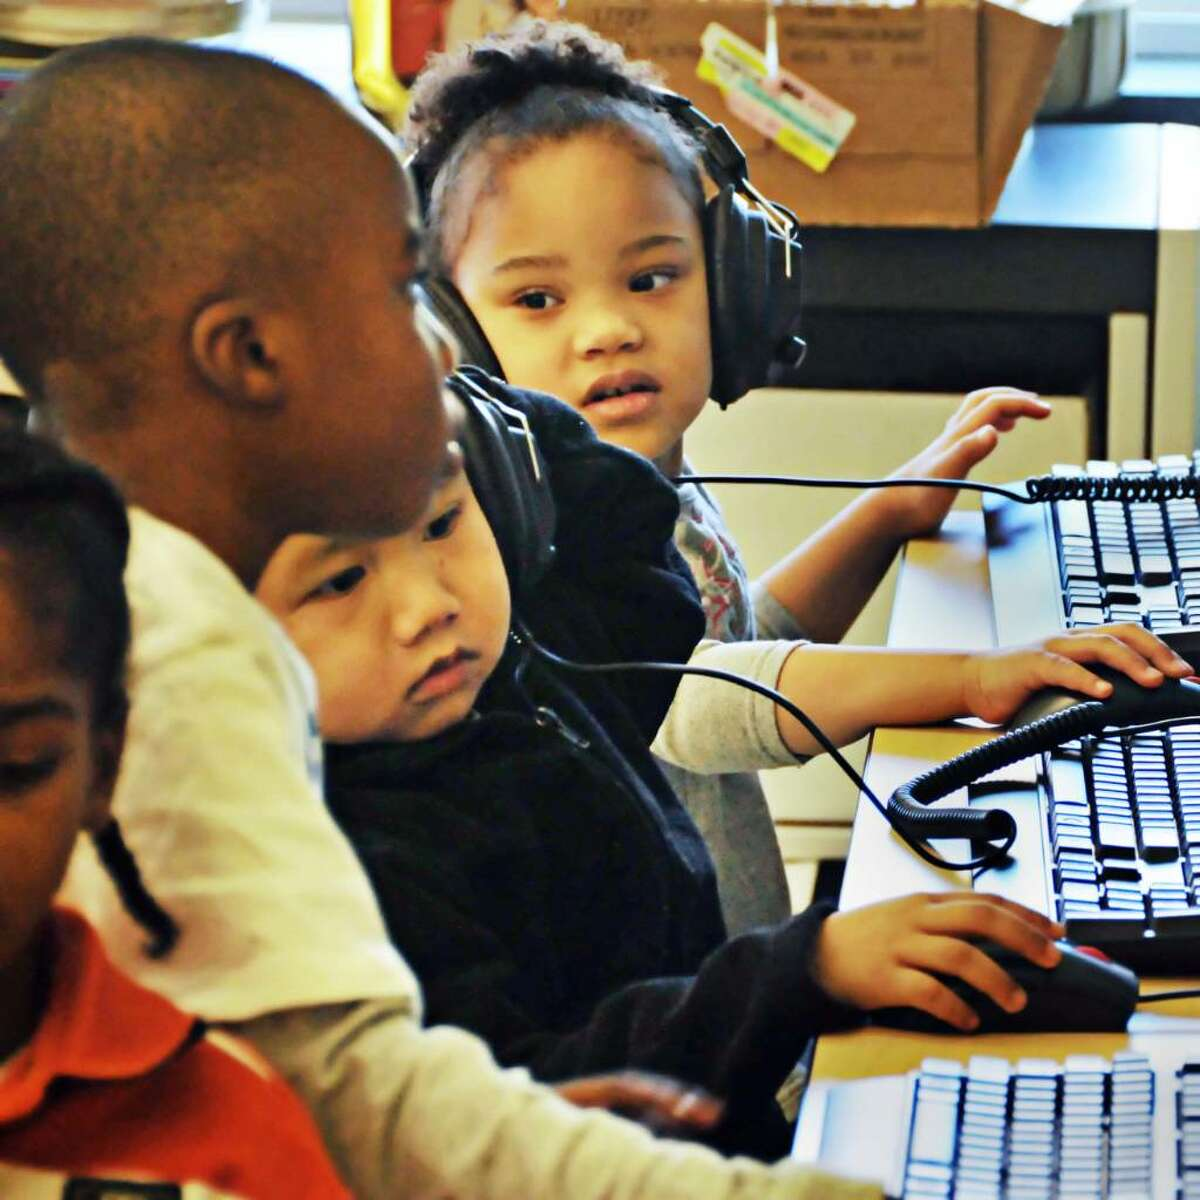 Giffen Memorial Elementary pre-kindergarten students, from left, Deavion Springsteen, Na Reh and Nigianna Grimes at computers in their classroom. (John Carl D'Annibale / Times Union)